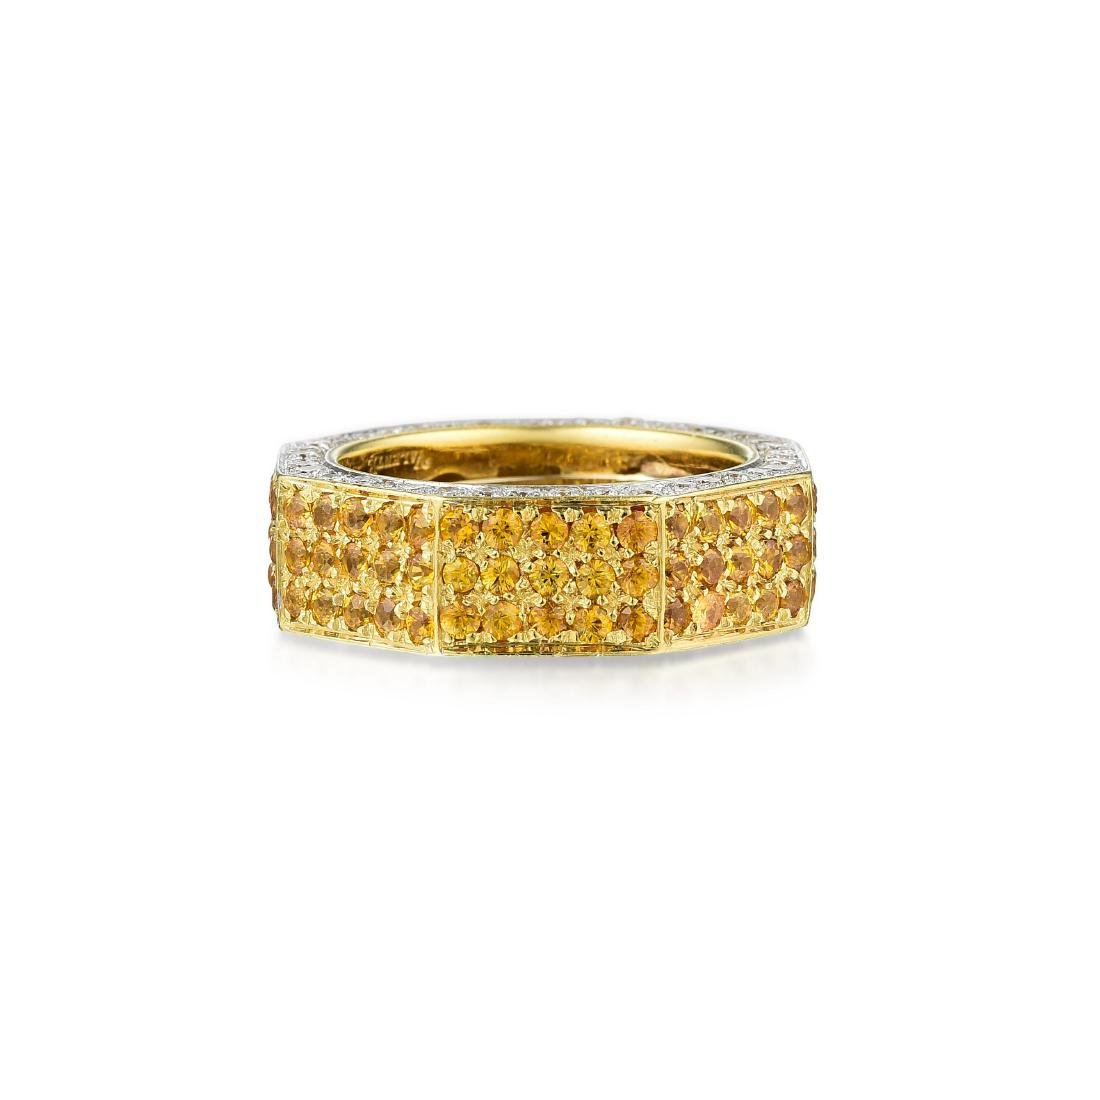 Valente 18K Gold Yellow Sapphire and Diamond Band